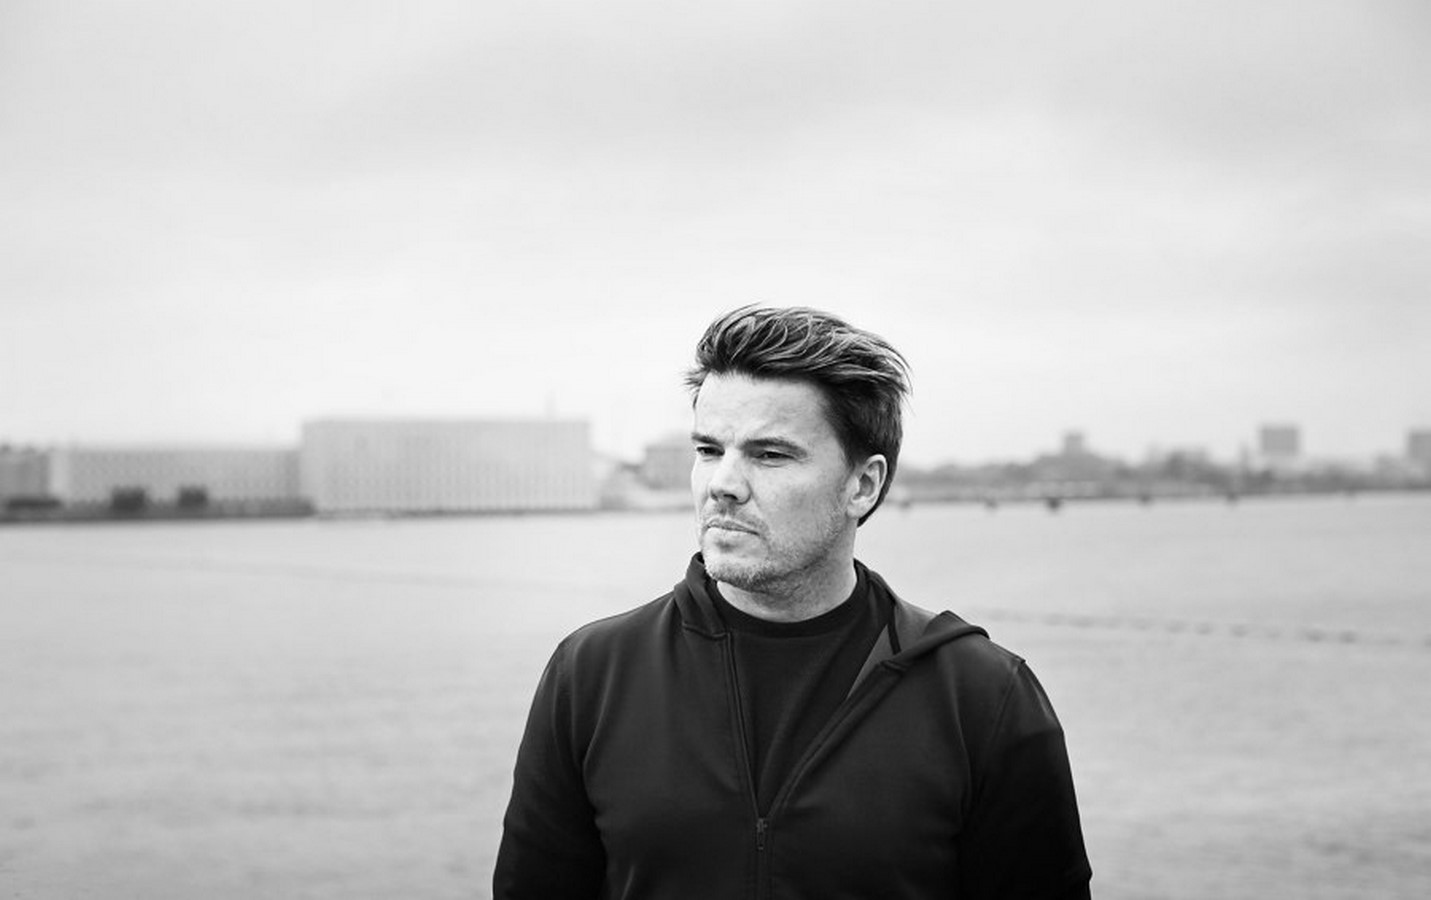 """Company to """"reimagine the way we build our homes"""" launched by Bjarke Ingels - Sheet1"""